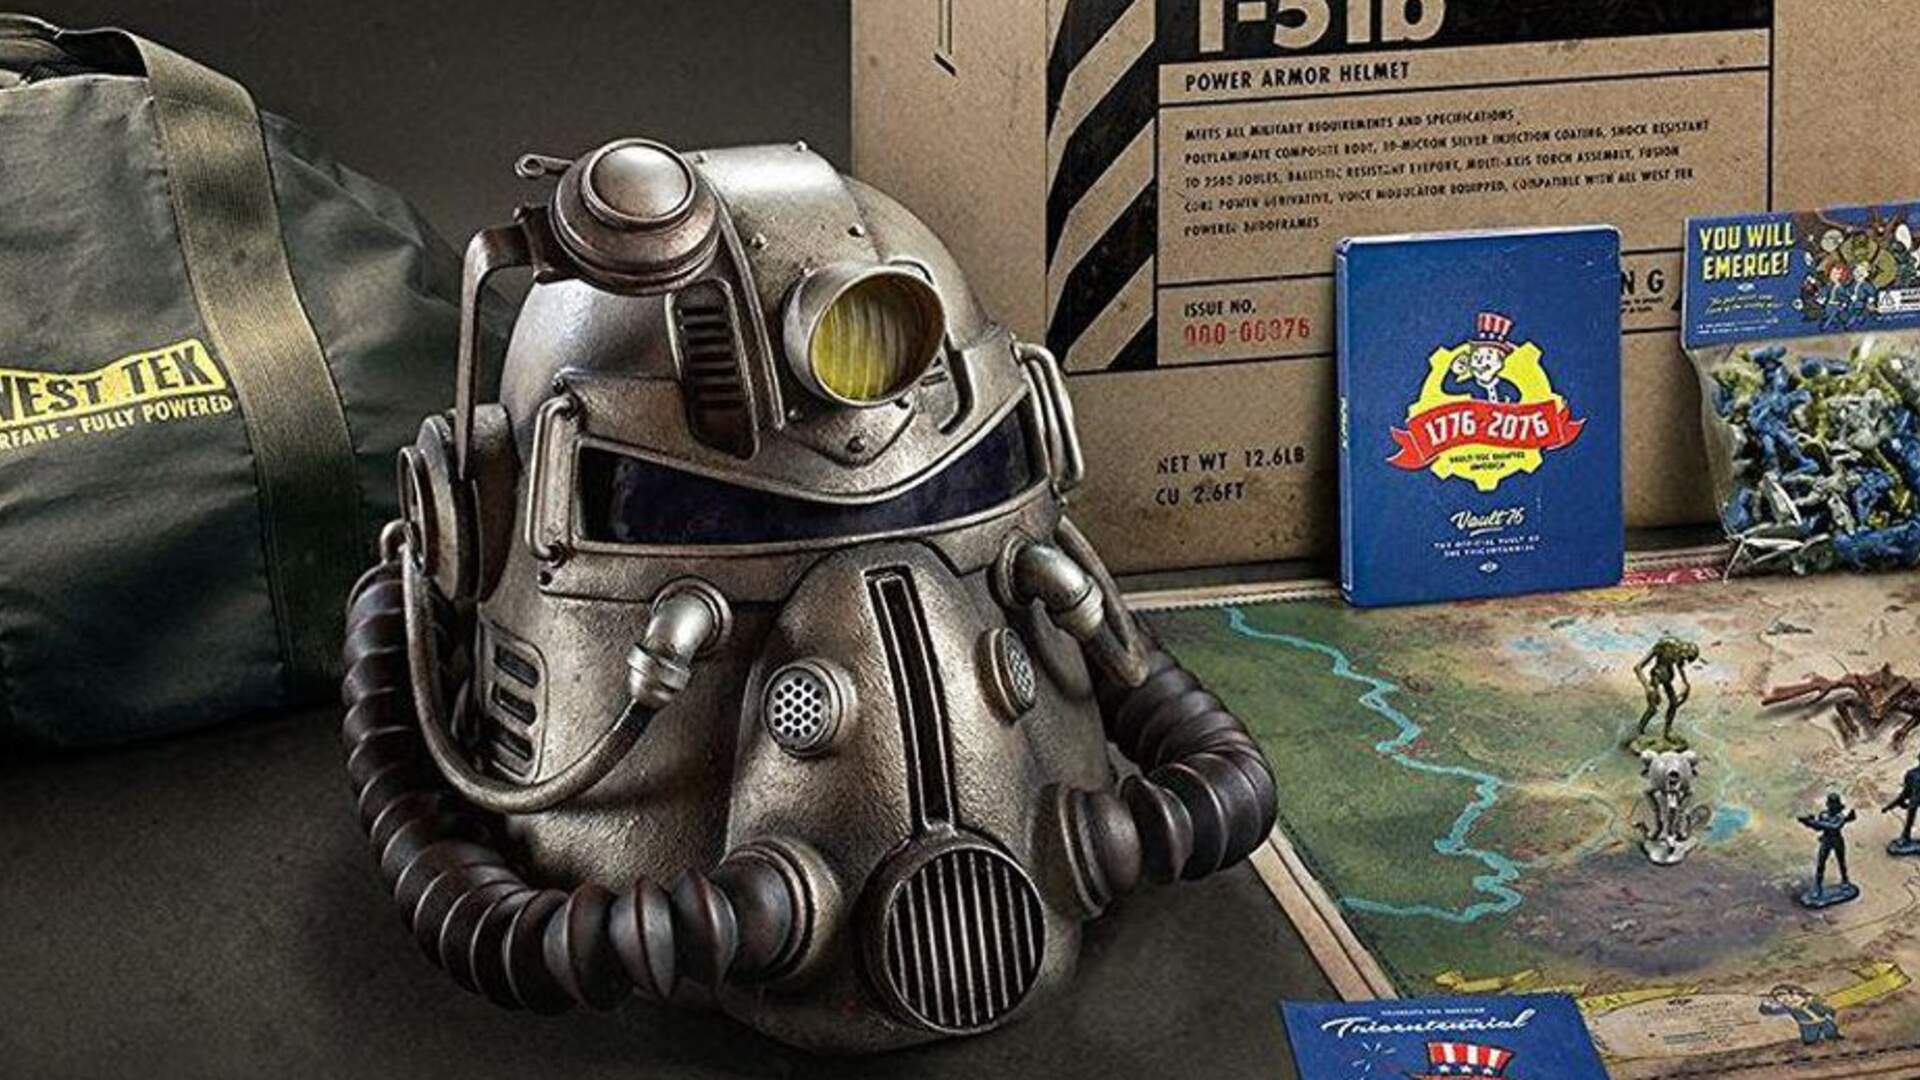 Fallout 76's Cardboard Disc Is Just the Icing on a Badly Received Expensive Collector's Edition